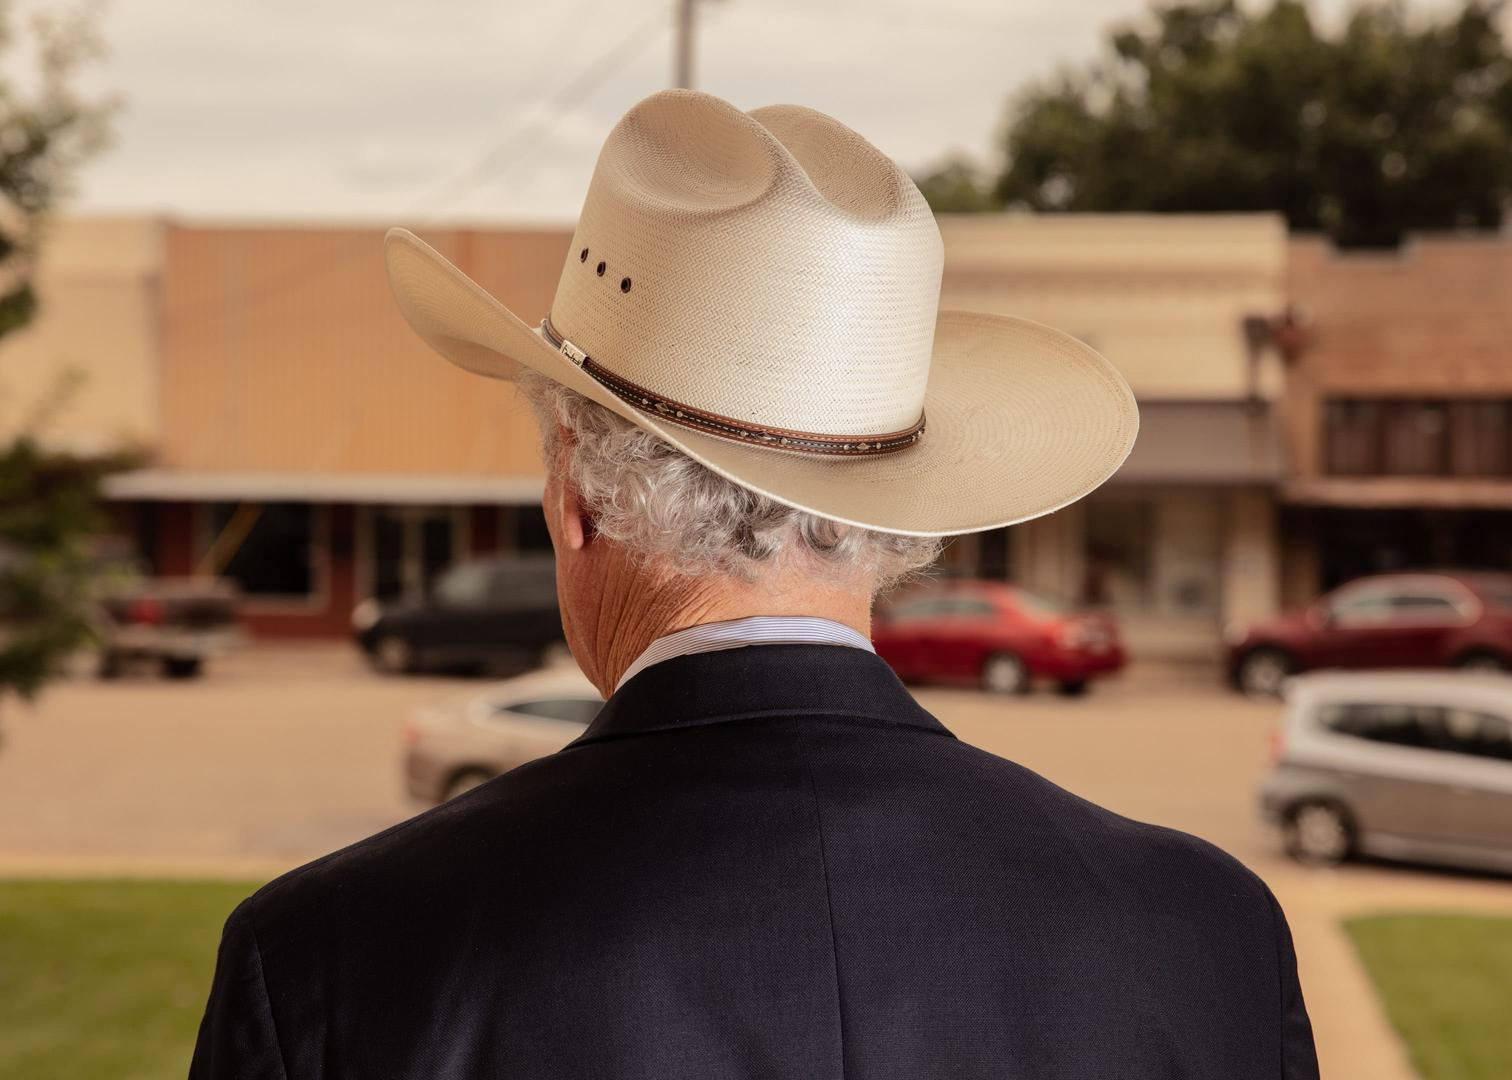 <p><strong>2. </strong><em>Wired: The Hard-Luck Texas Town That Bet on Bitcoin and Lost</em></p>